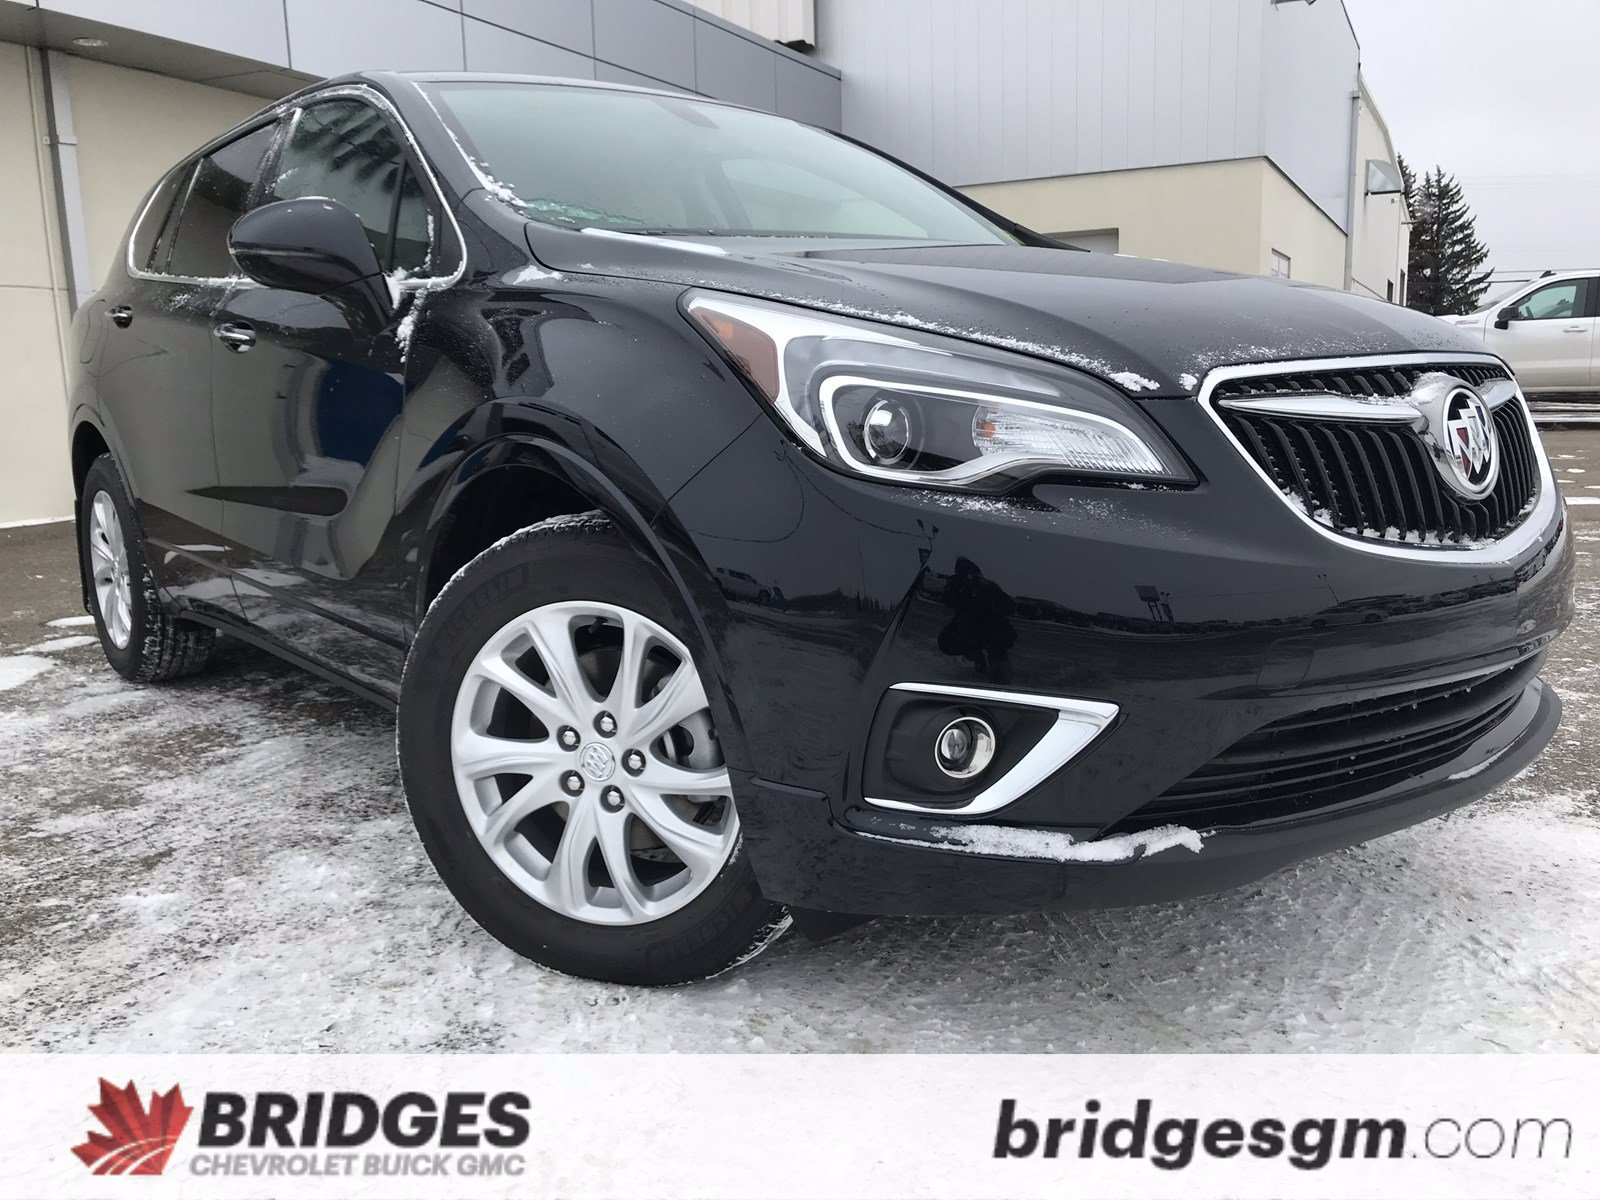 New 2020 Buick Envision Preferred Awd 2022 Buick Envision Ground Clearance, Gas Mileage, Horsepower